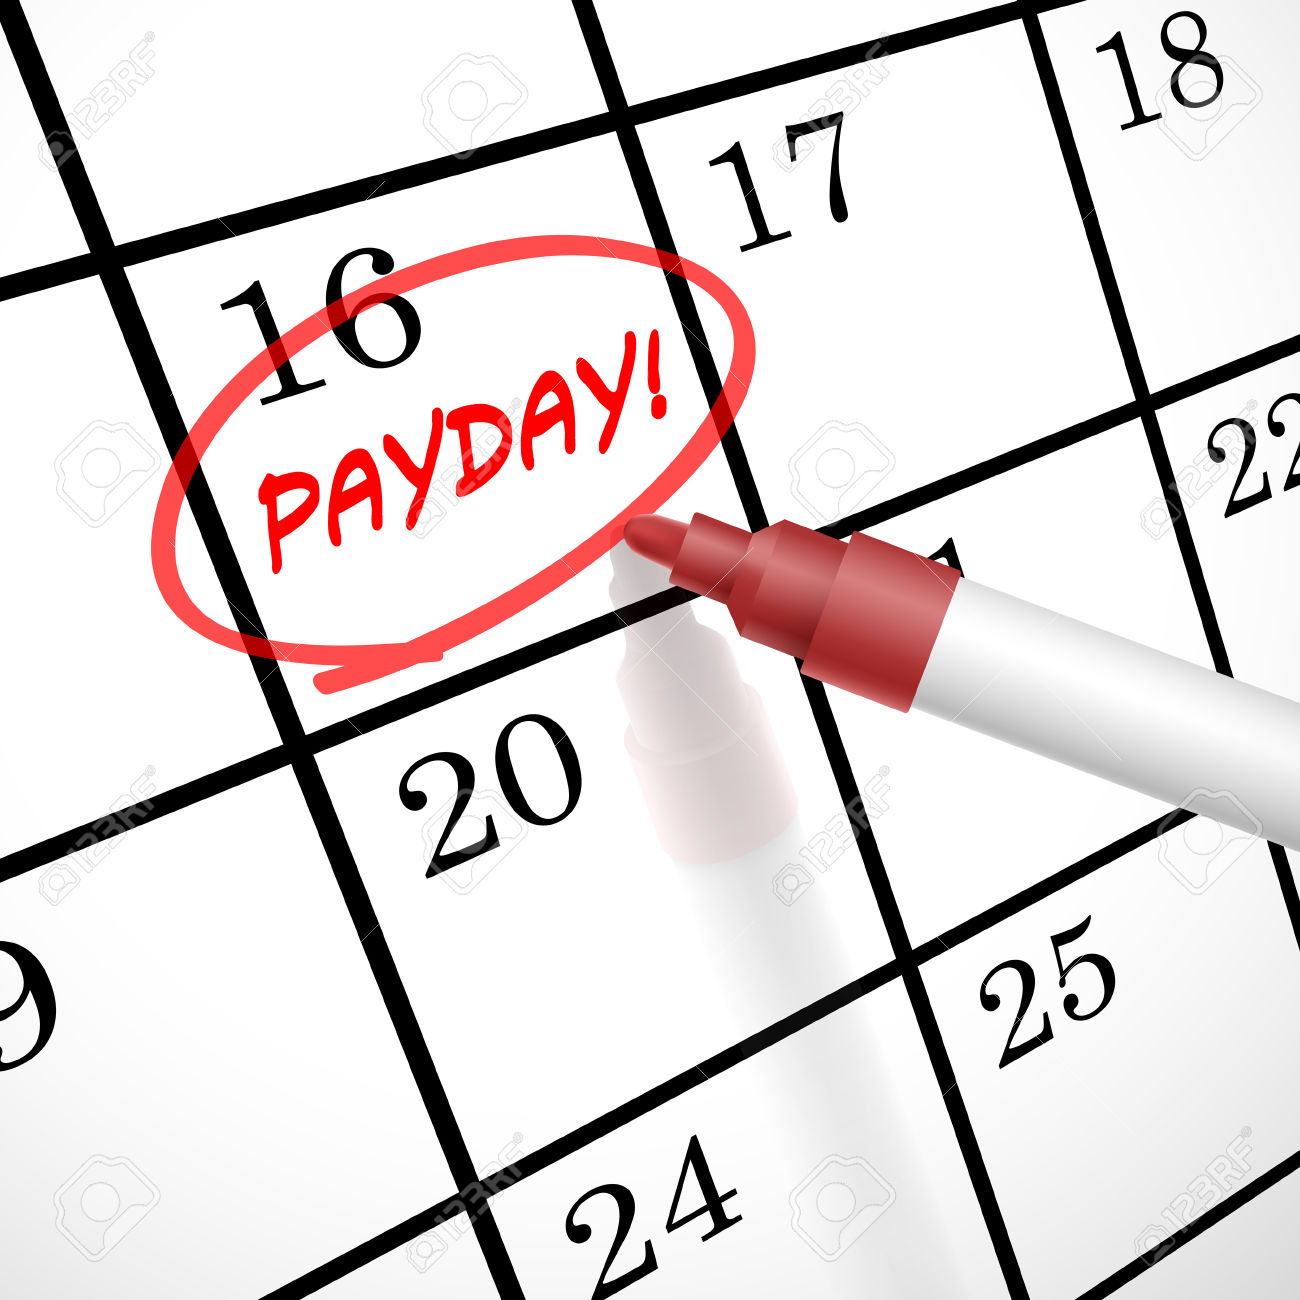 payday word circle marked on a calendar